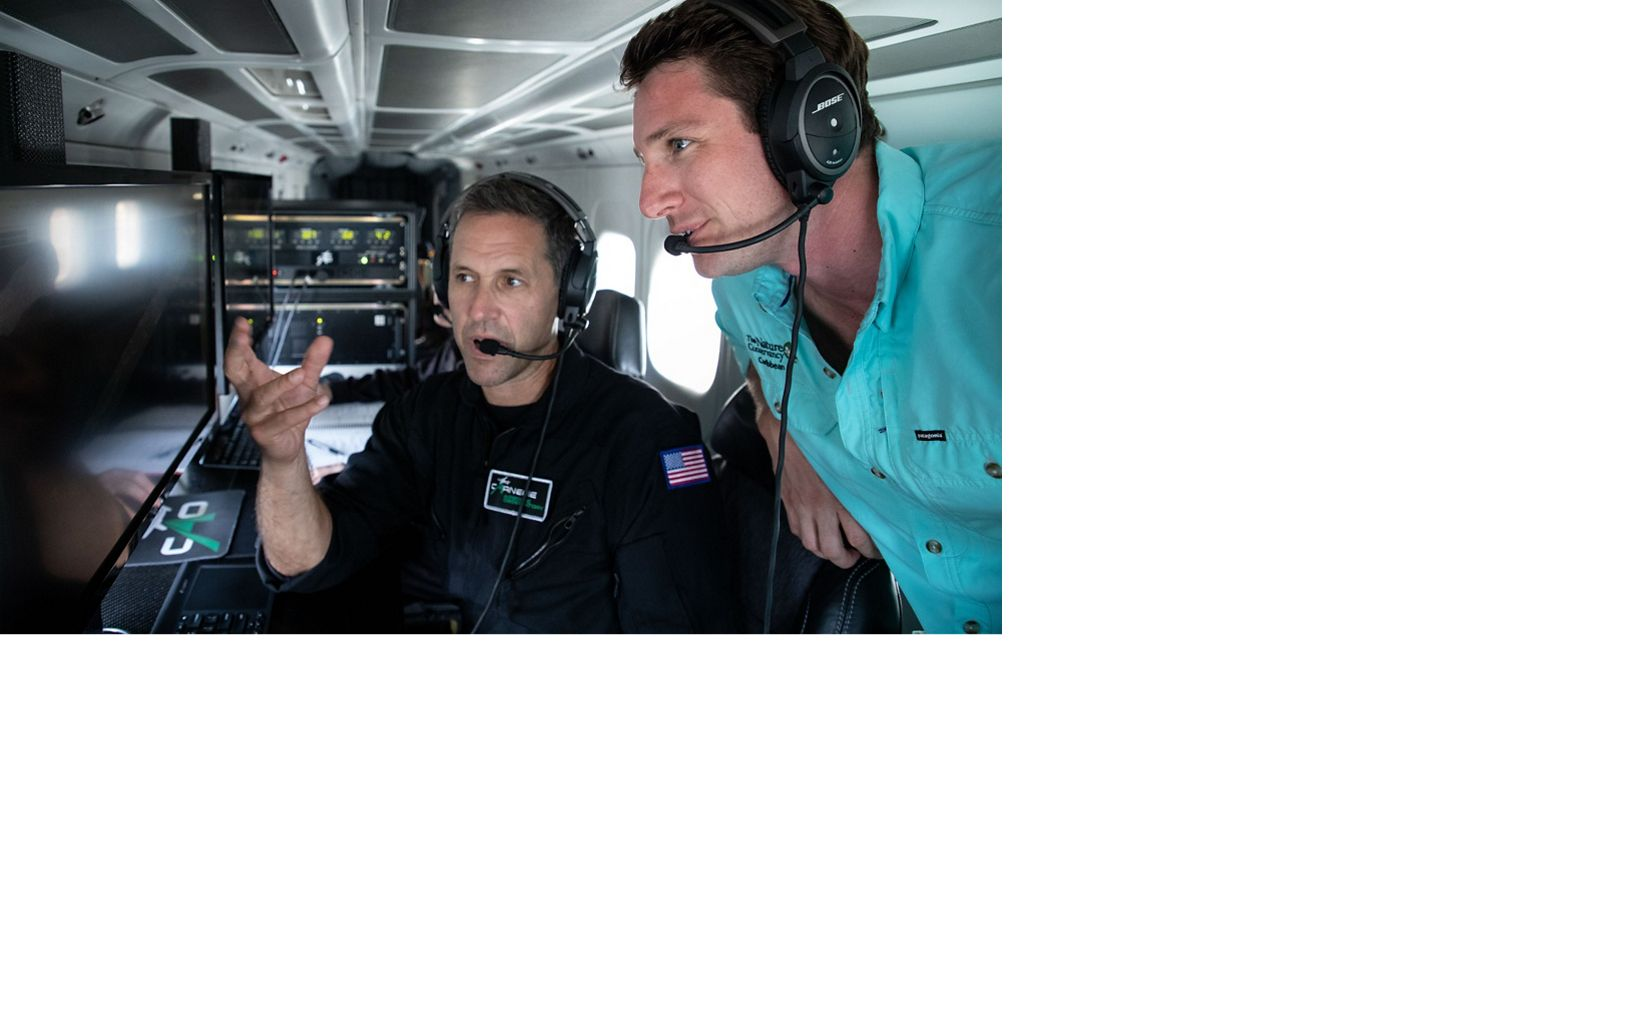 Dr. Greg Asner of the CAO and Joe Pollock, Coral Strategy Director for TNC in the Caribbean analyze data being monitored by the CAO aircraft, while on a fly over mission.